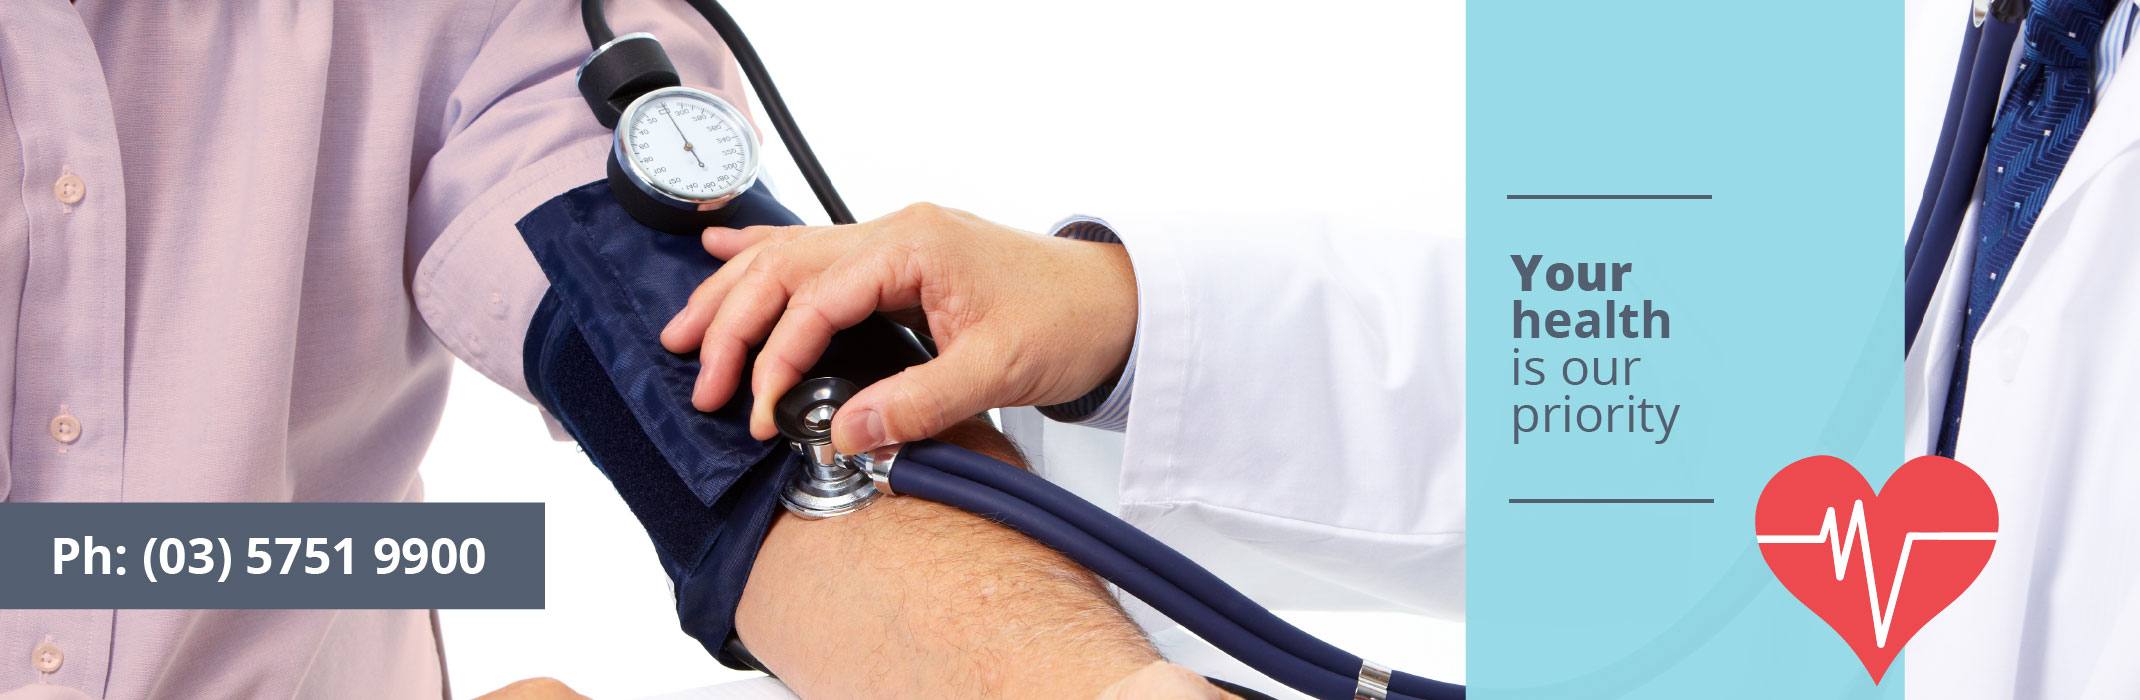 Standish St Surgery Your Health is our Priority Call 03) 5751 9900